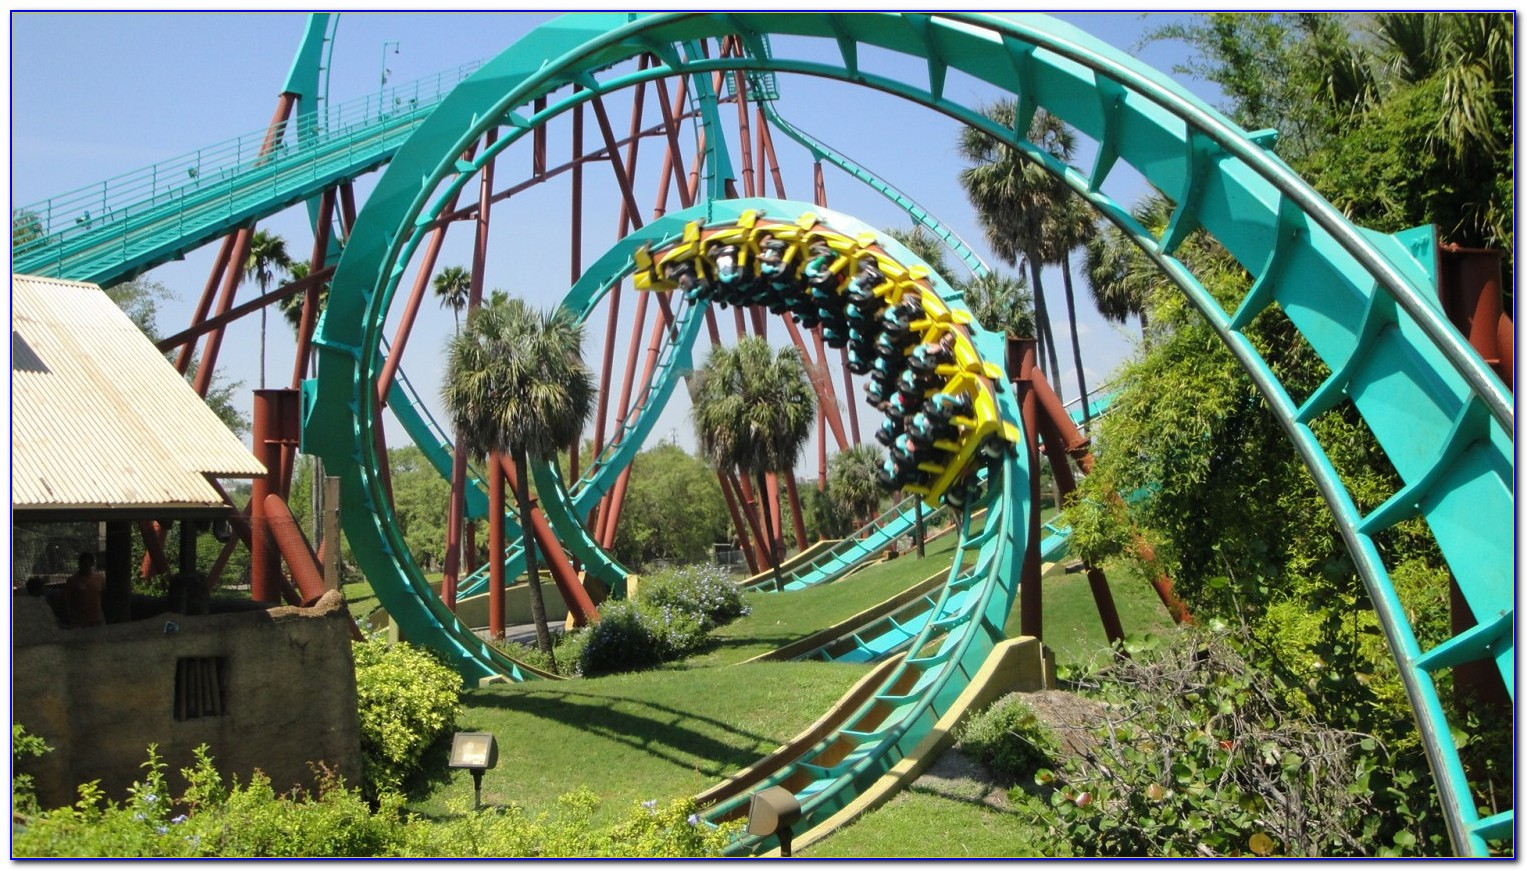 Busch gardens williamsburg hours of operation garden ftempo - Busch gardens williamsburg rides ...